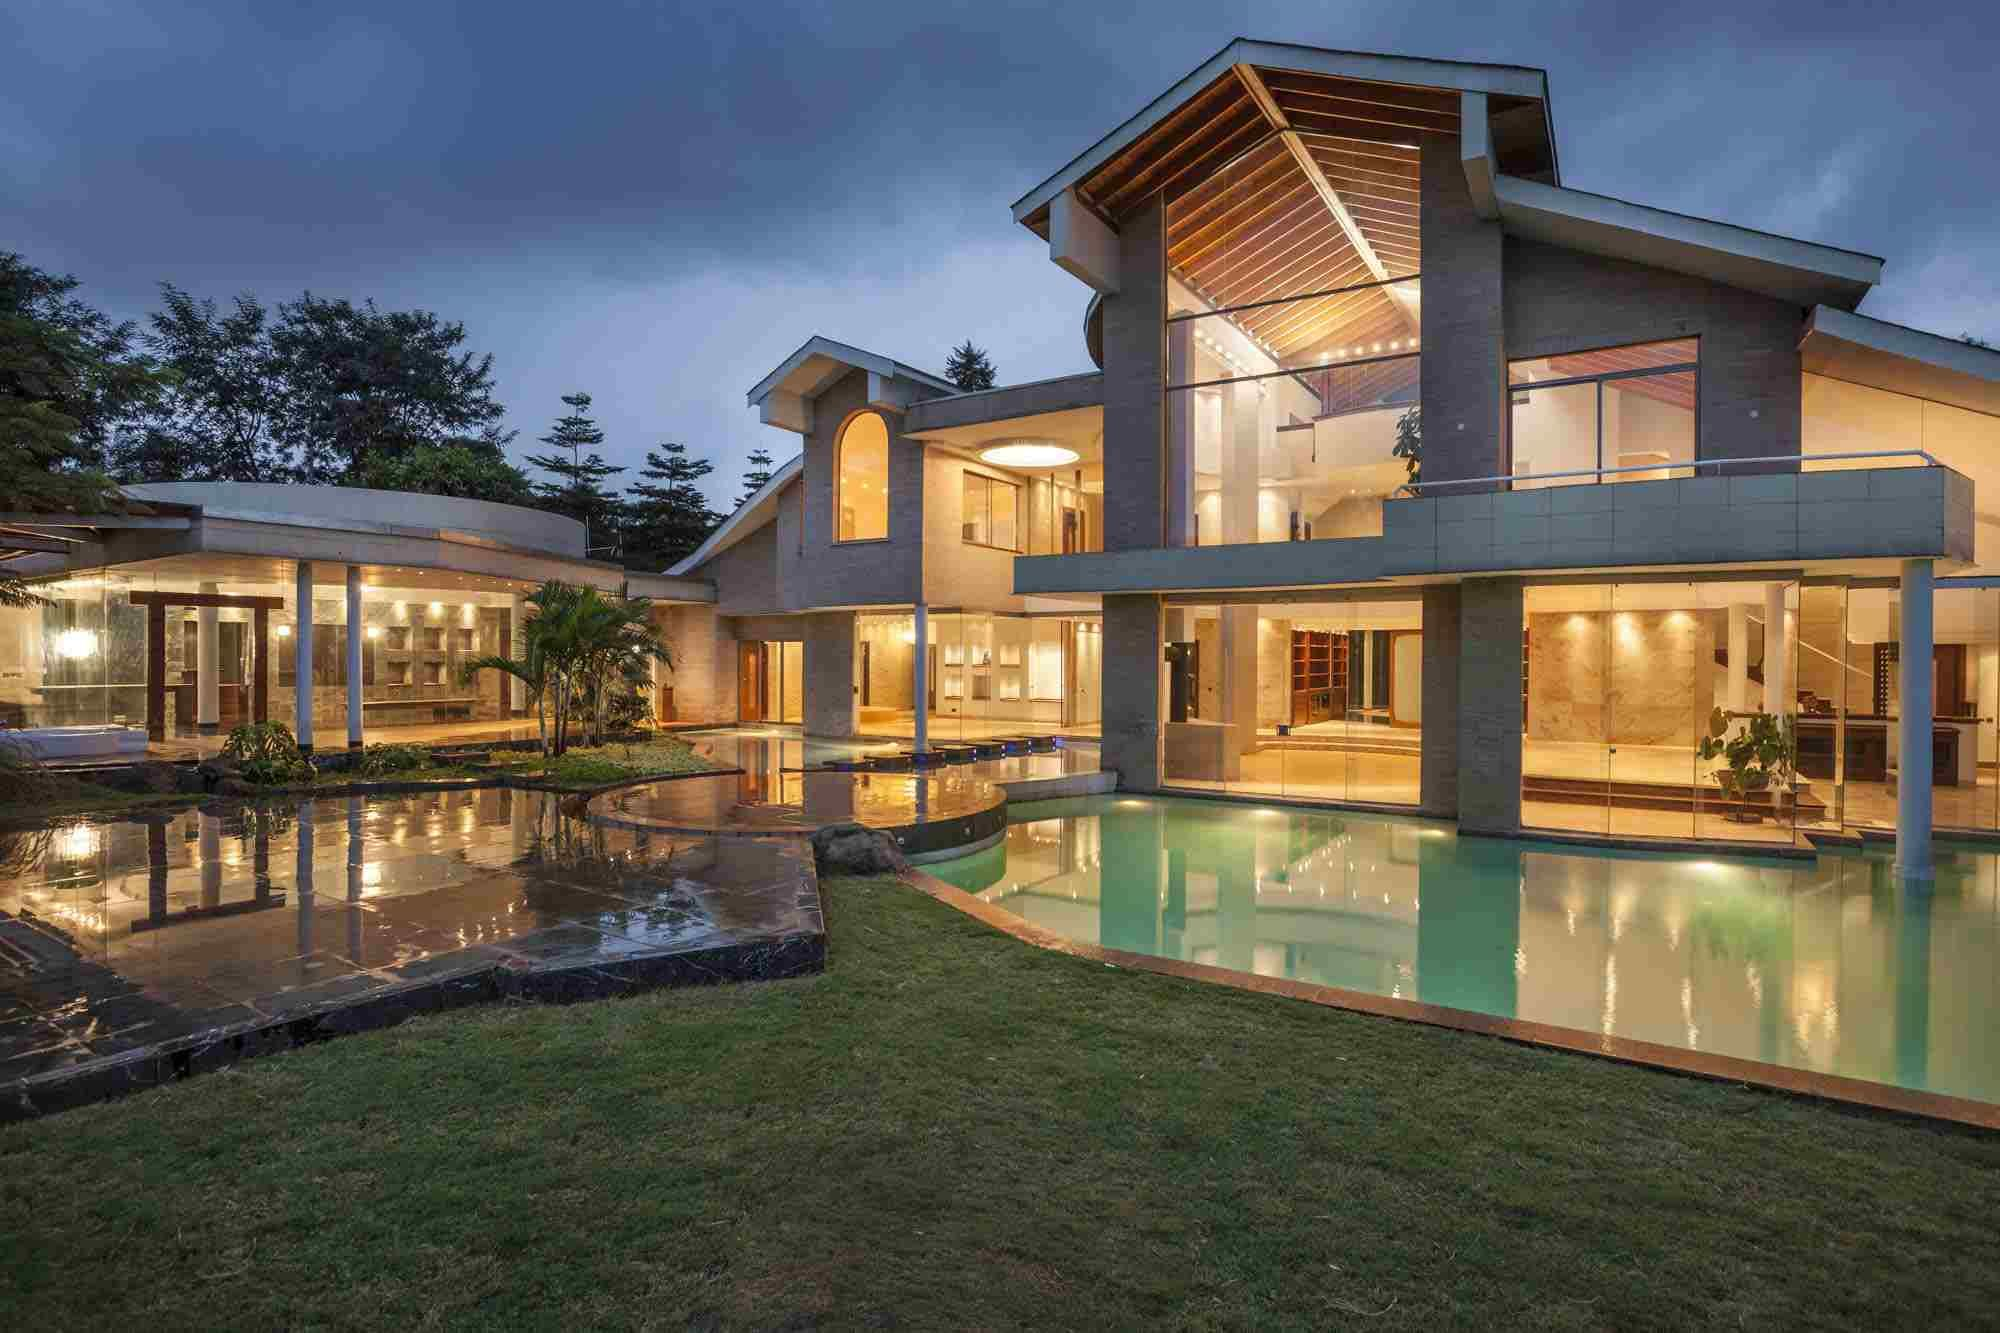 Tour of an ultra luxurious mansion in nairobi kenya httpafricanluxurymag